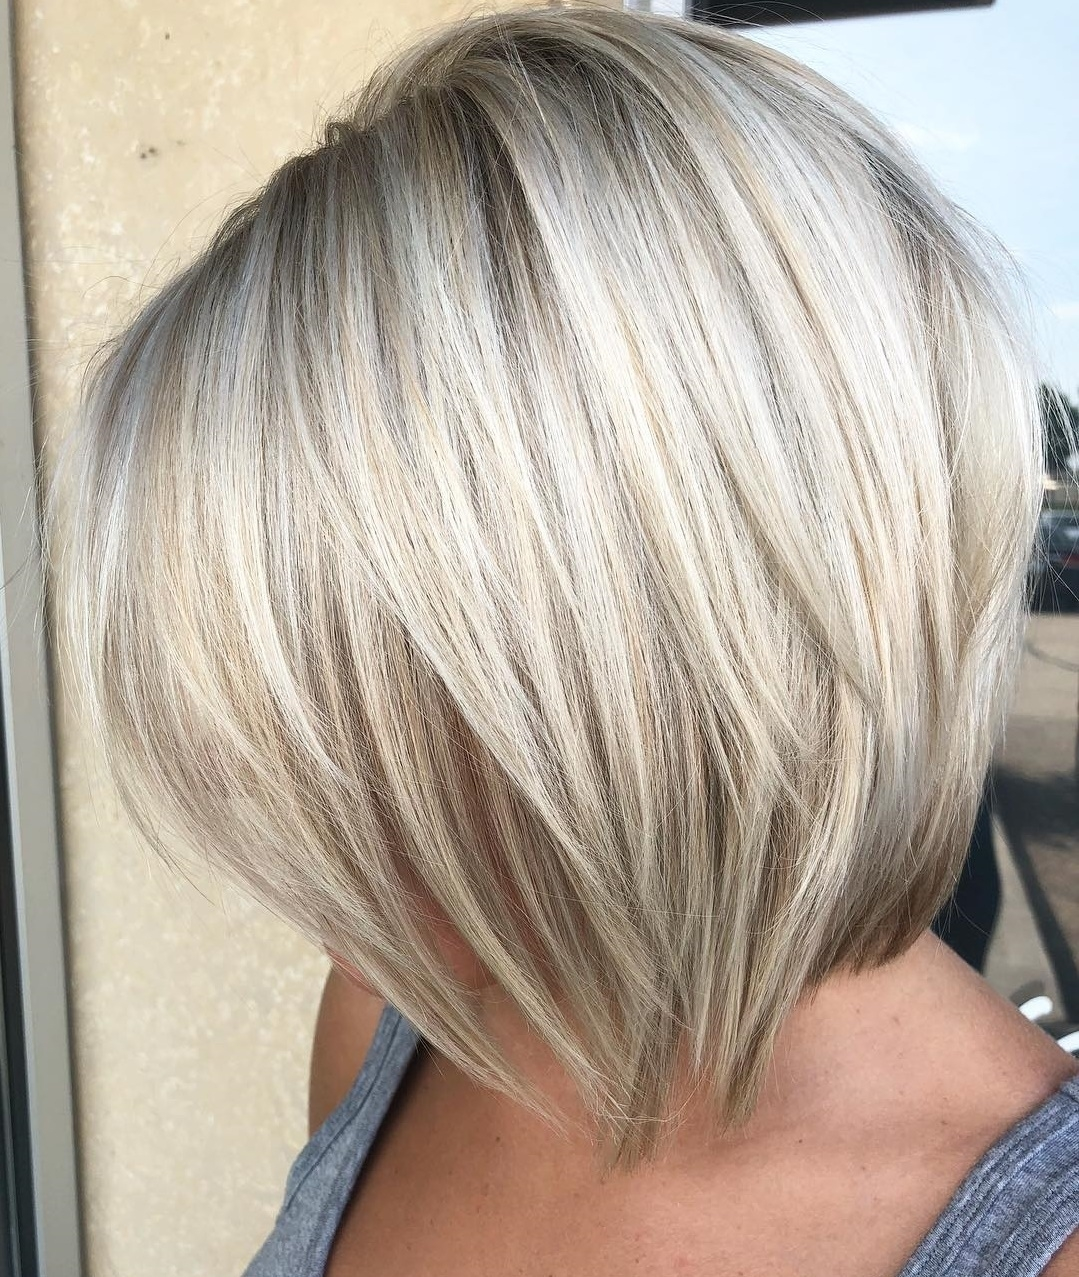 45 Short Hairstyles For Fine Hair To Rock In 2019 regarding Best Haircuts For Fine Gray Hair